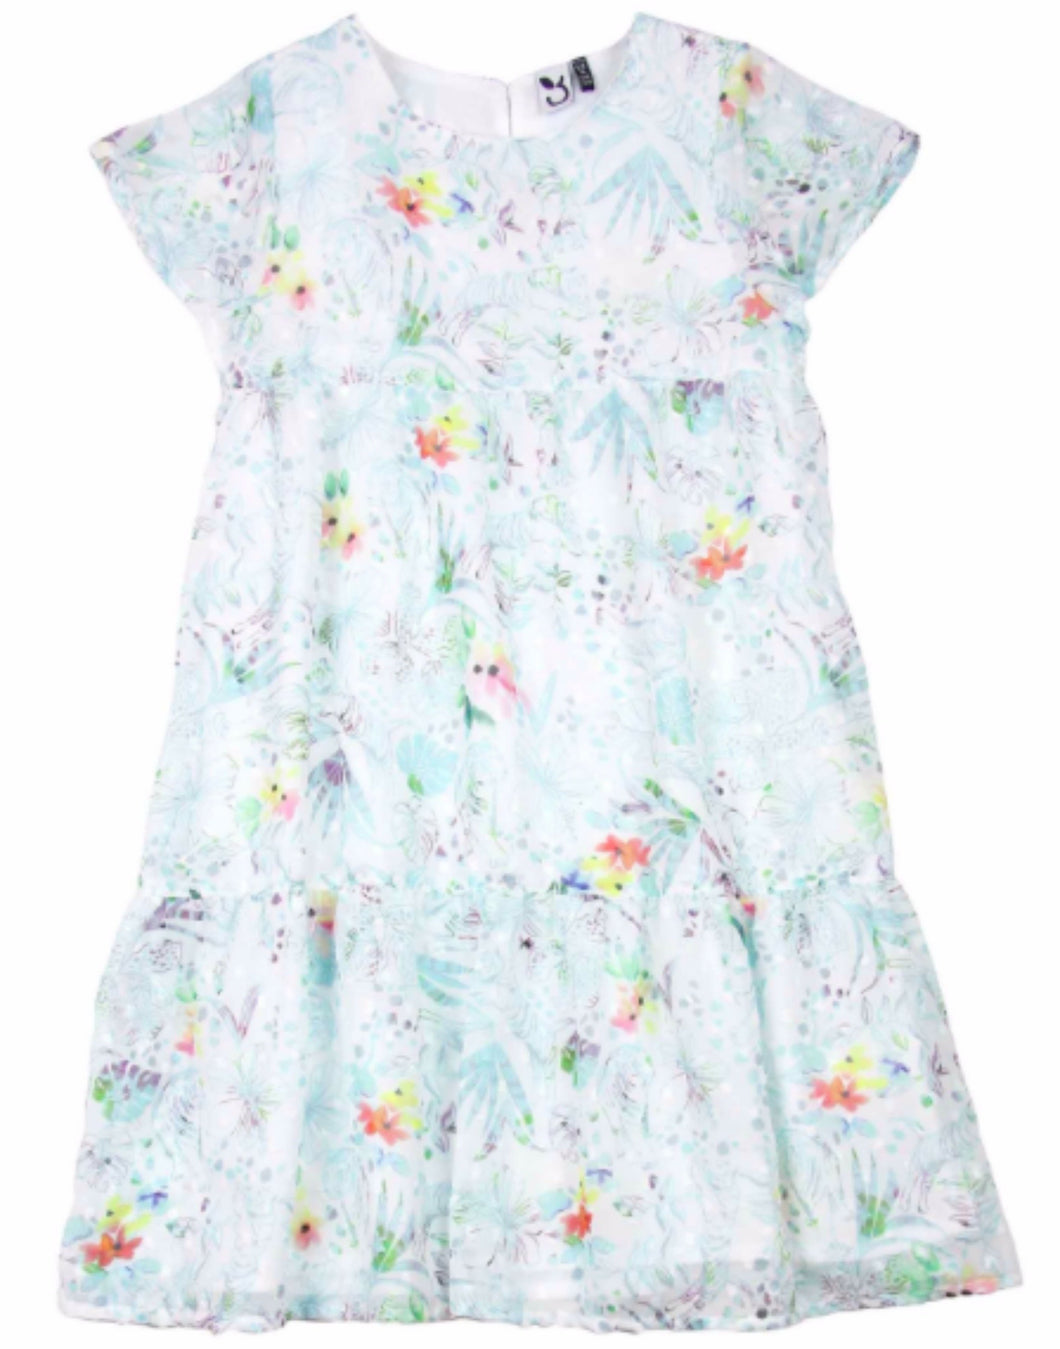 3POMMES Girl's Blue and Green Chiffon Dress